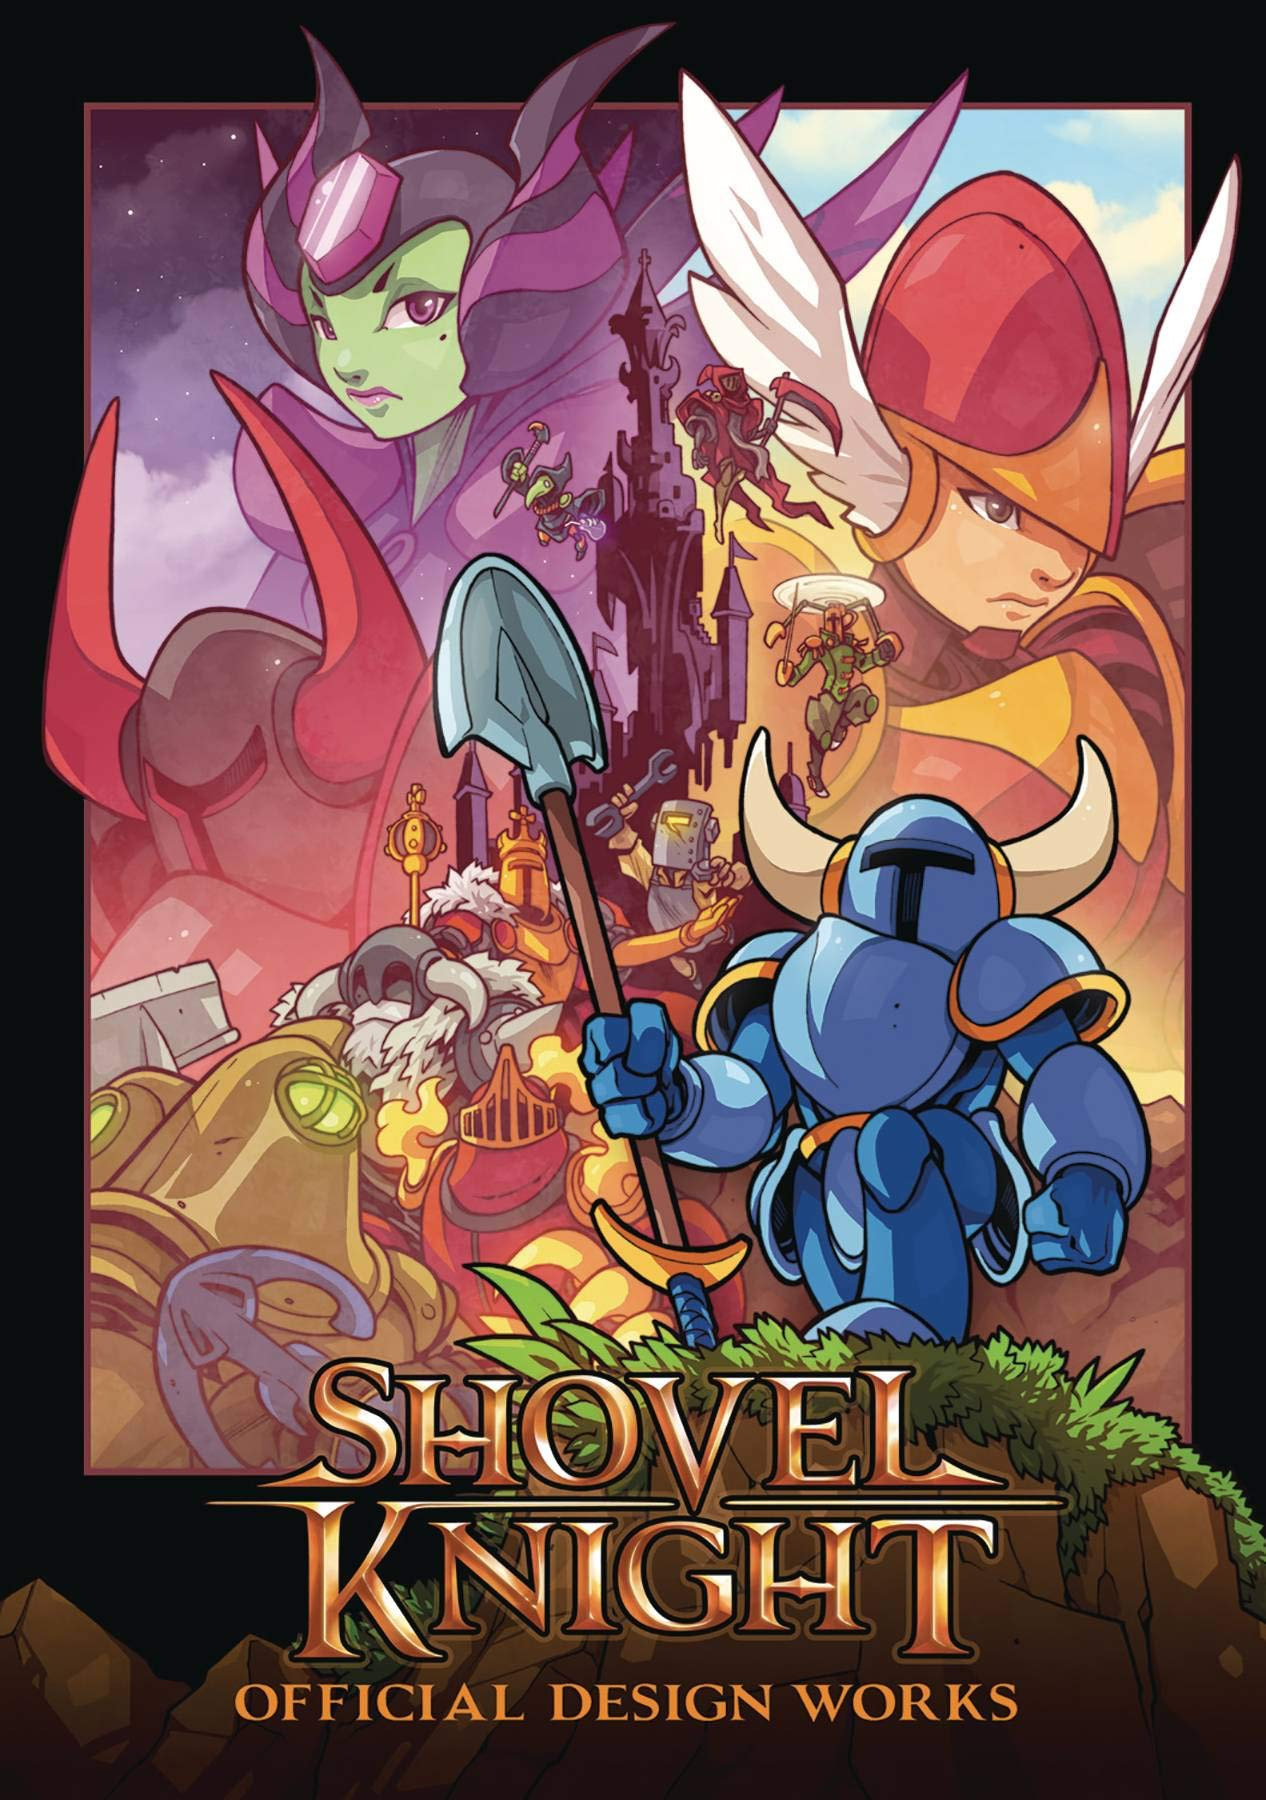 Image OfShovel Knight: Official Design Works